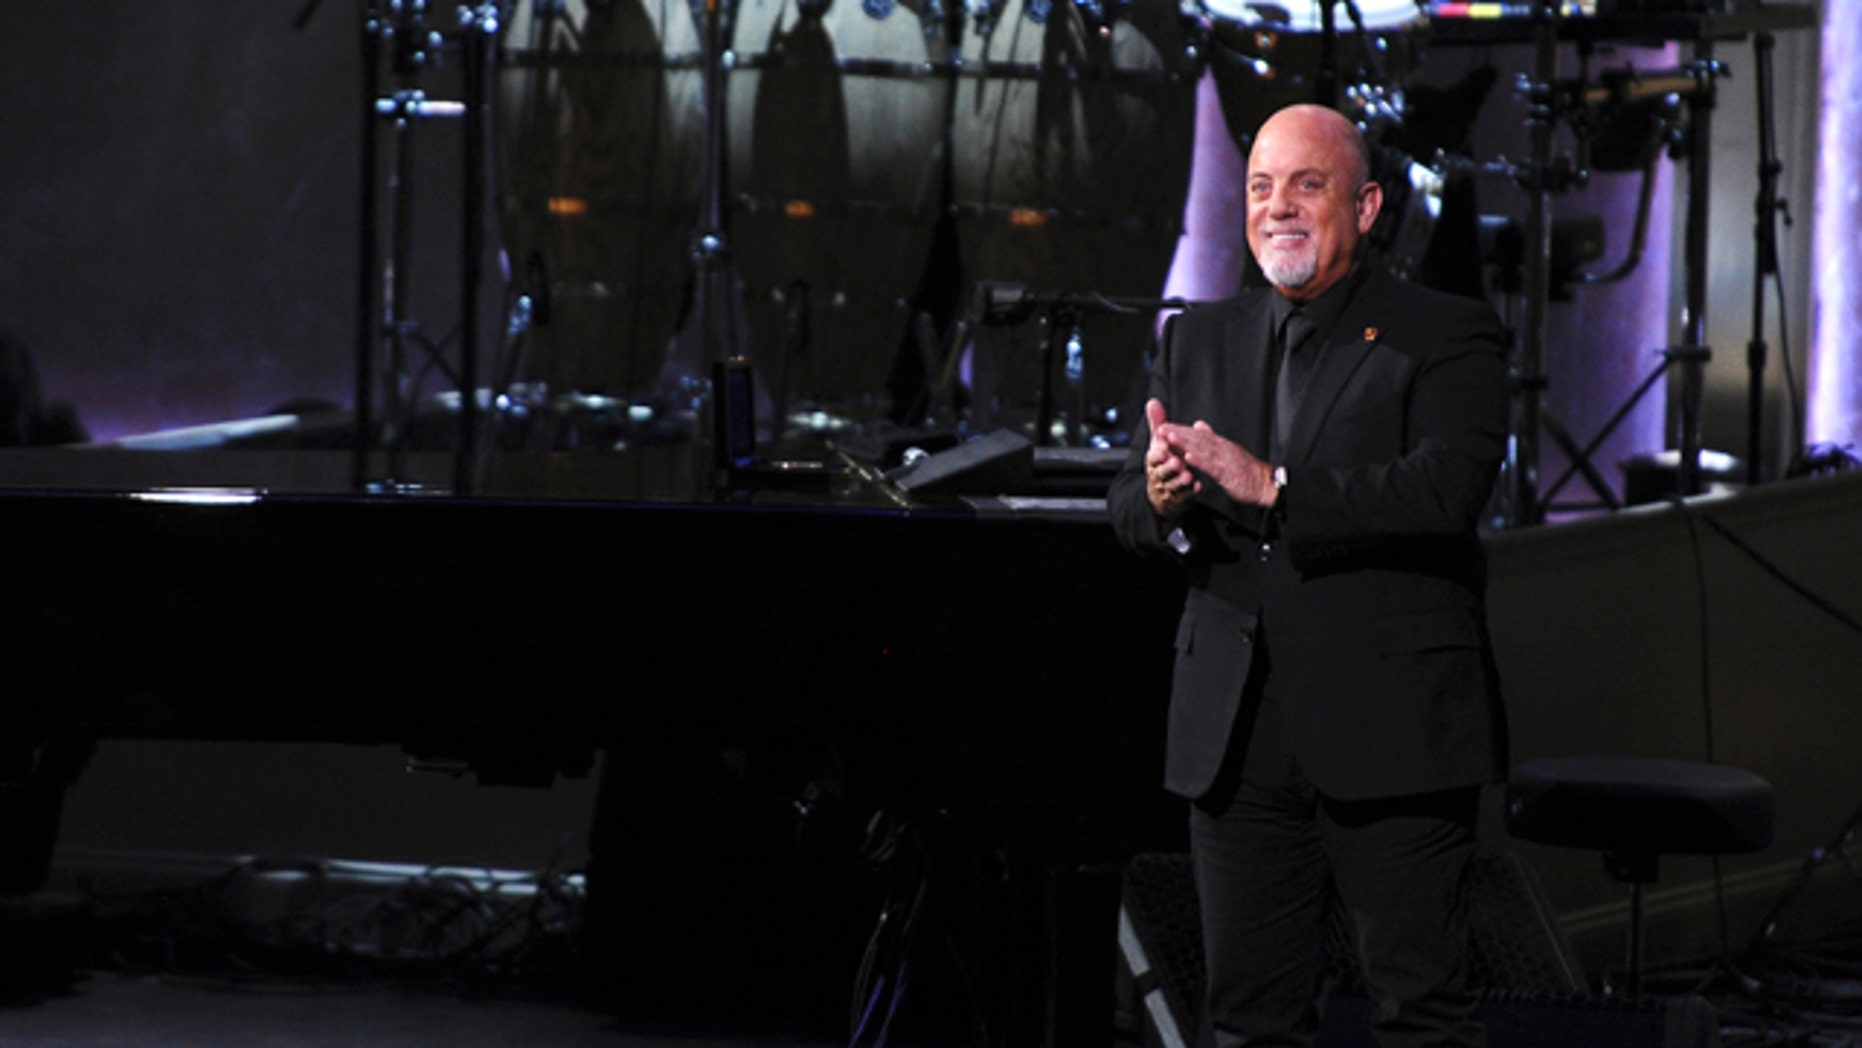 November 19, 2014. Billy Joel, the latest recipient of the Gershwin Prize for Popular Song, is honored during a tribute concert at DAR Constitution Hall in Washington.